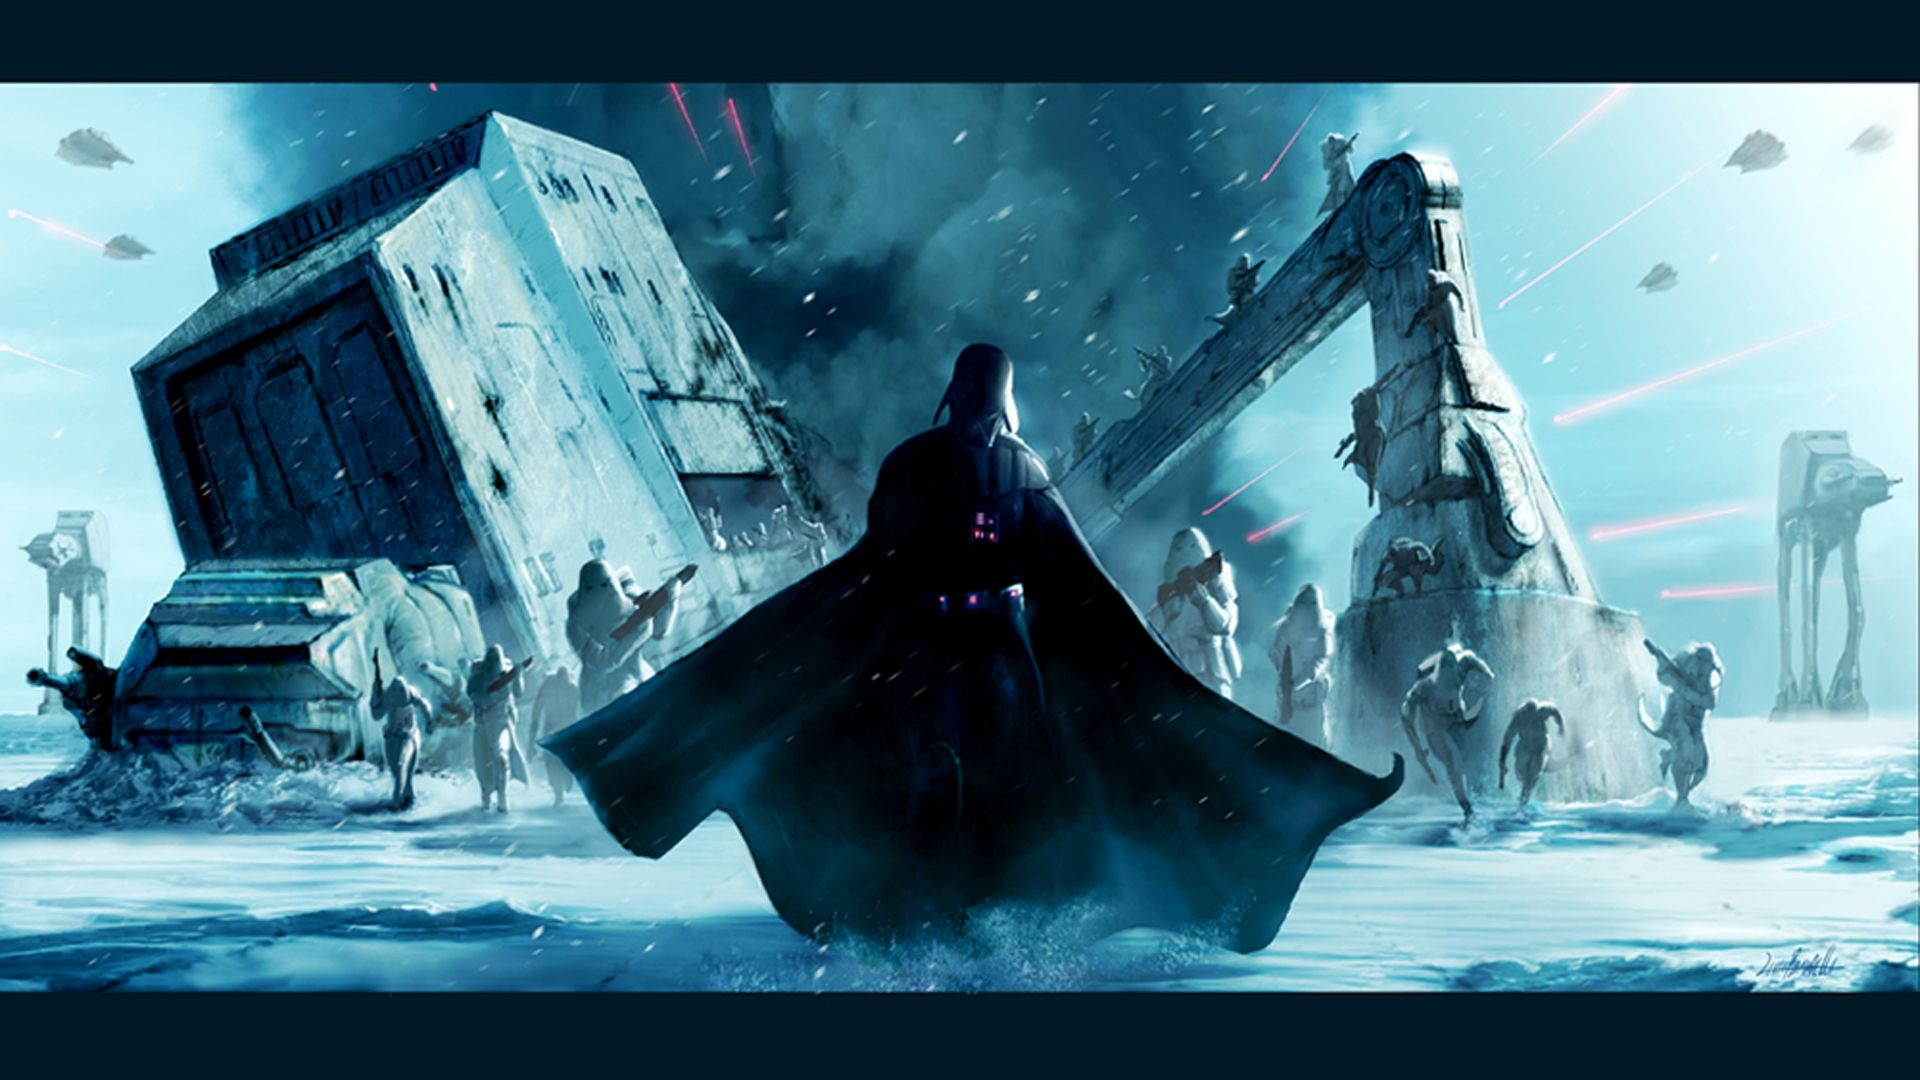 Wallpaper's Collection: «Star Wars Wallpapers»